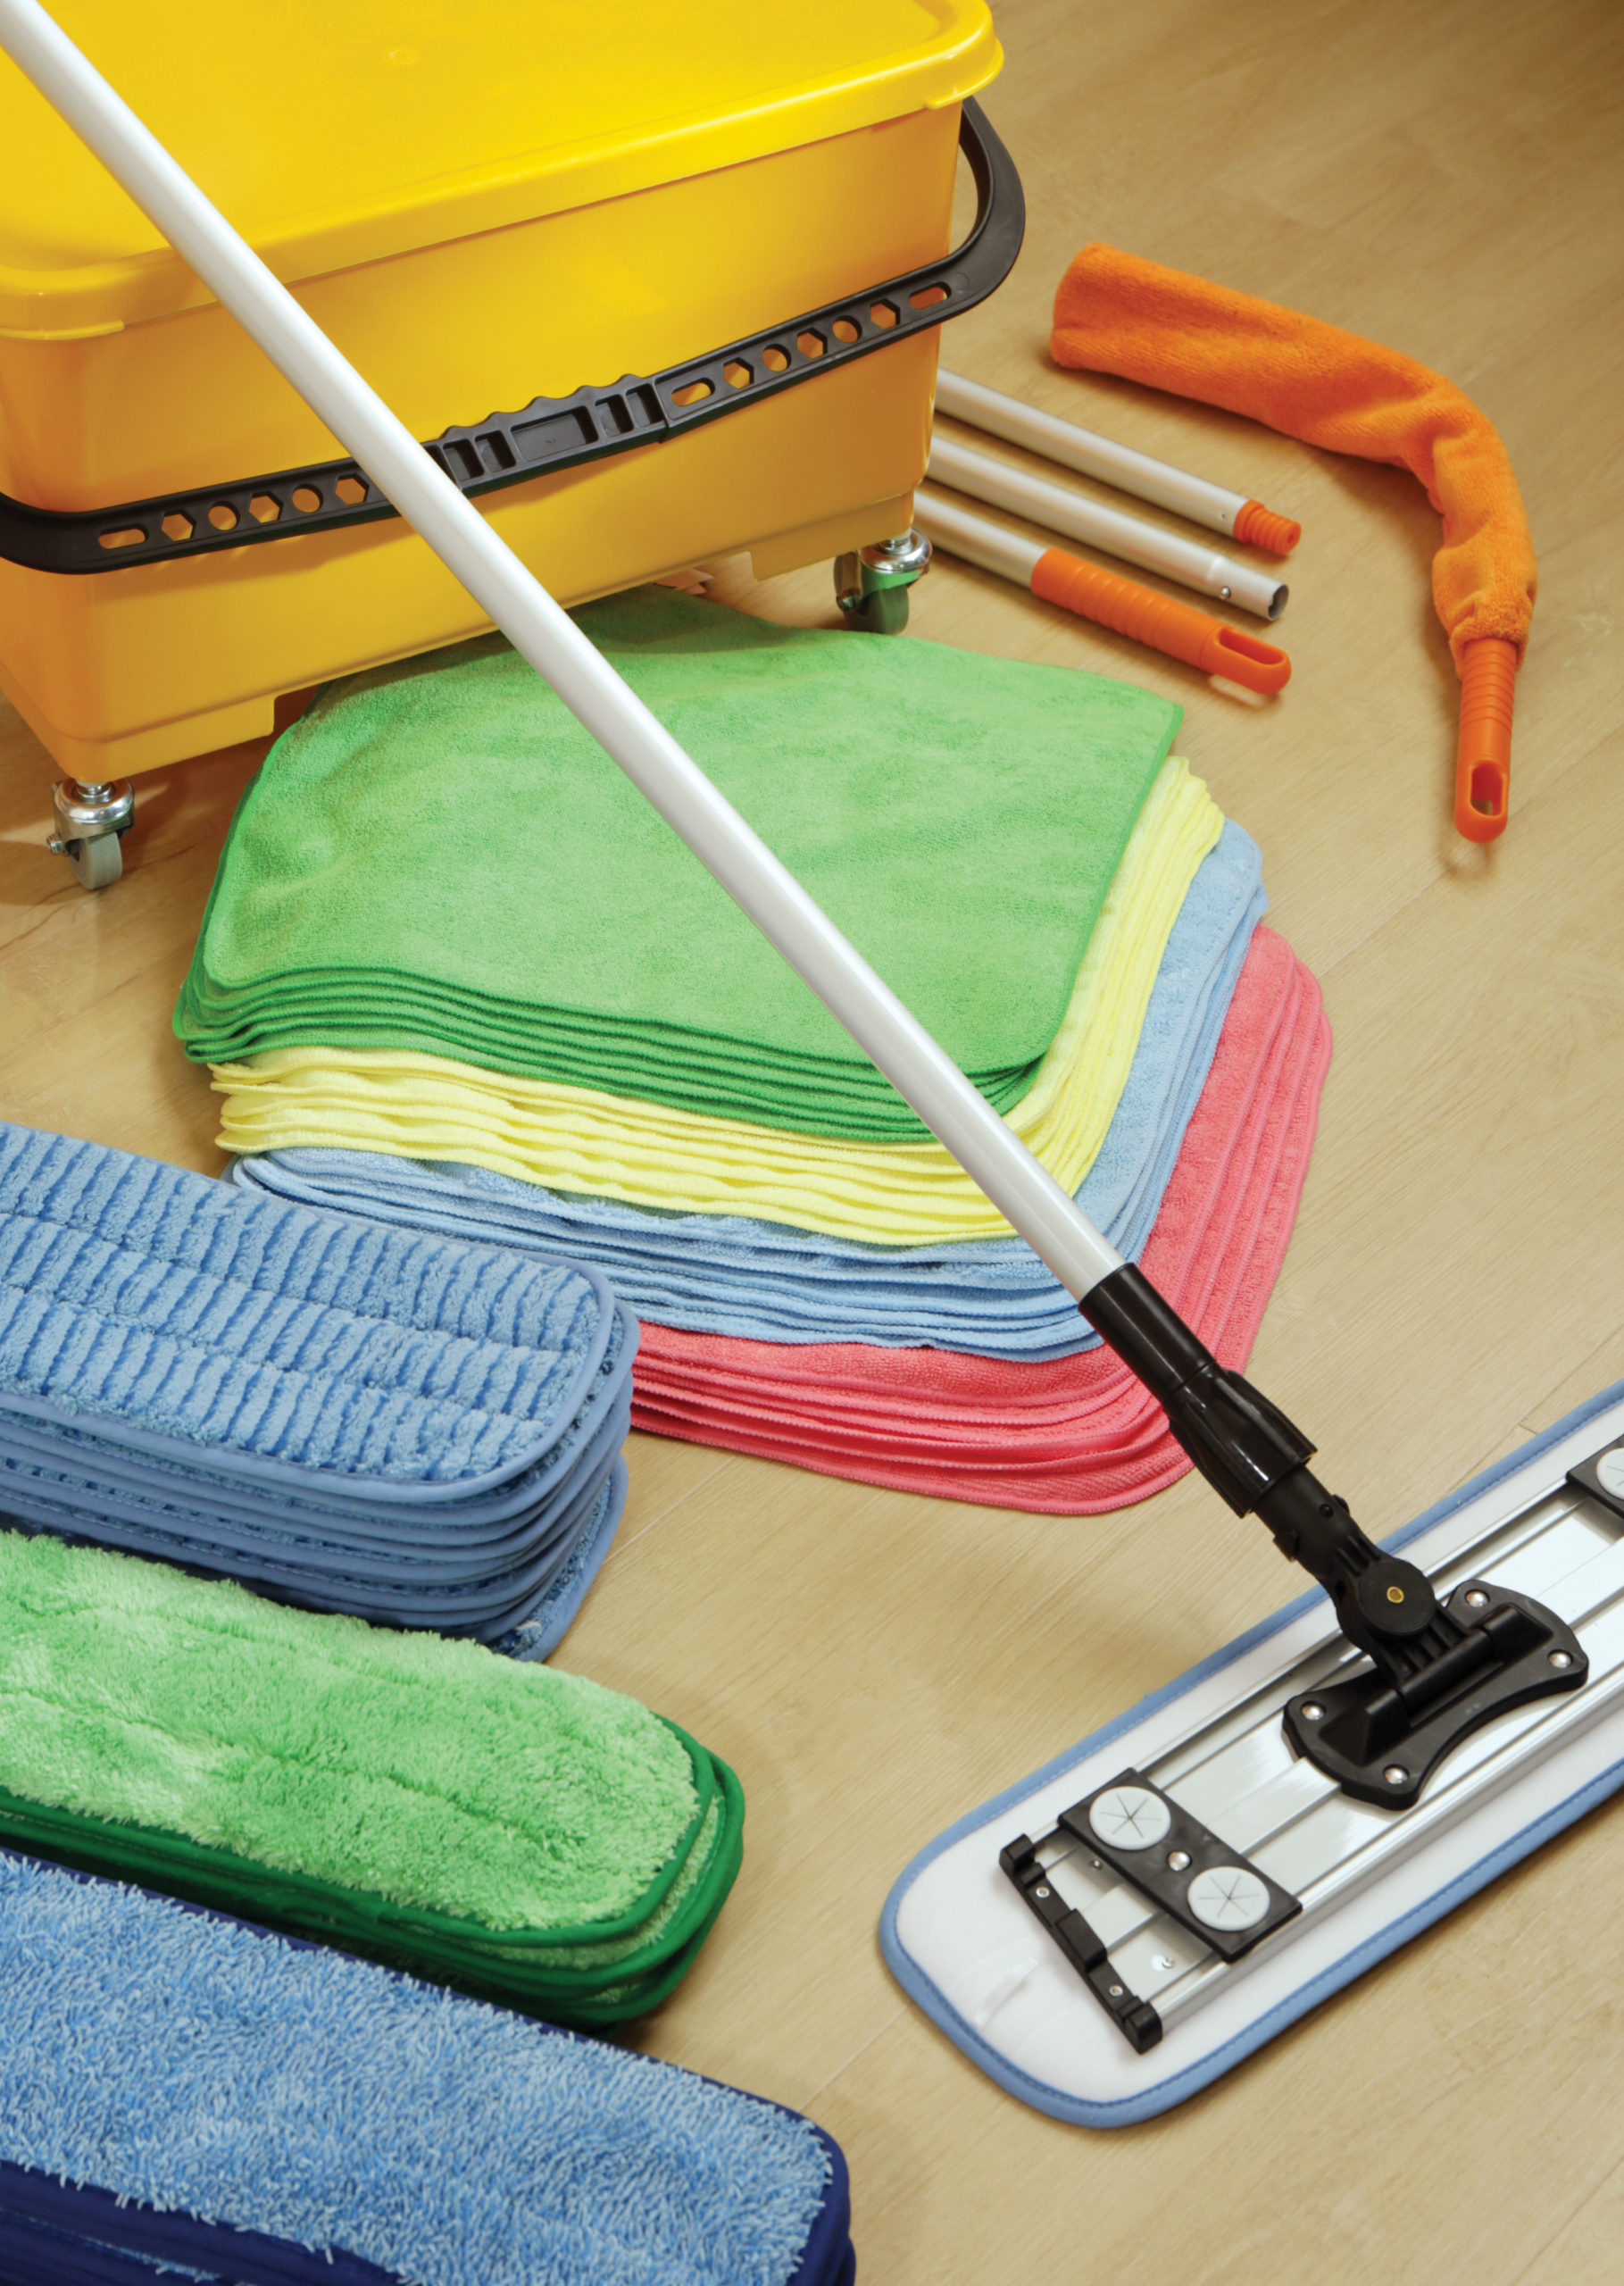 Enhance cleaning with microfiber cleaning products, like flat mops, cloths and dusters.